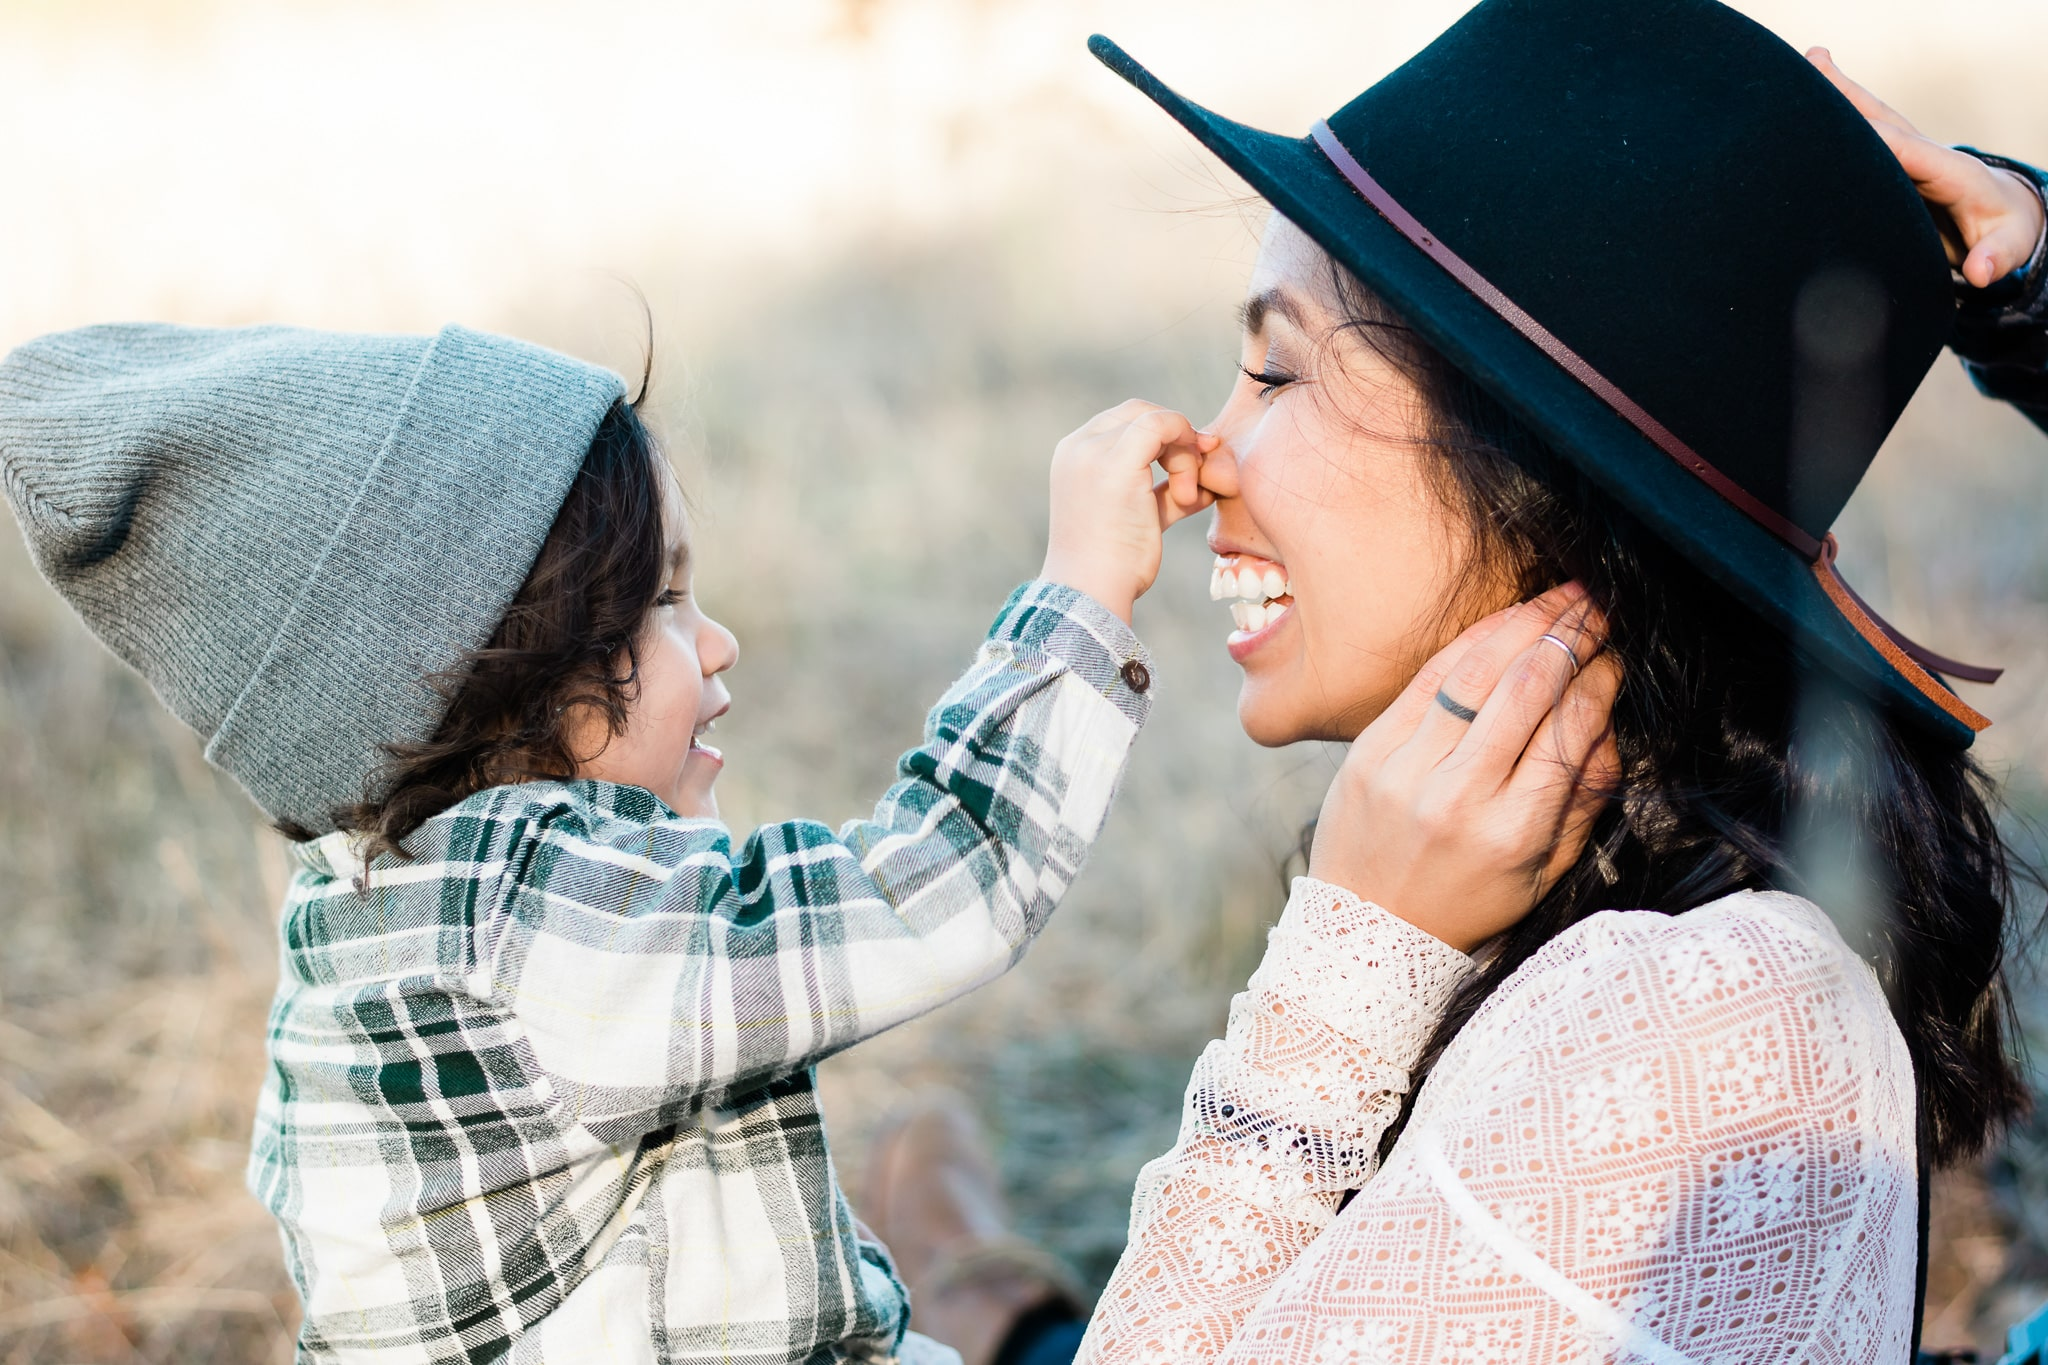 A silly moment between mother and son in Beaverton, Oregon